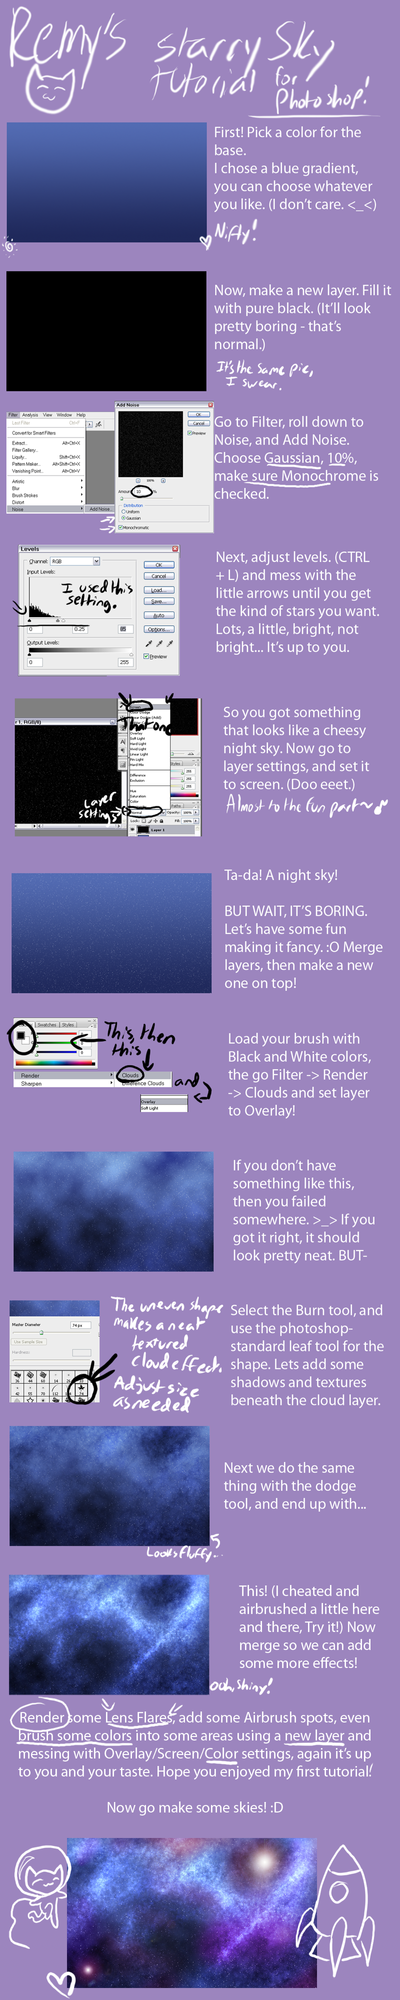 Starry Sky Tutorial by Remy-cake